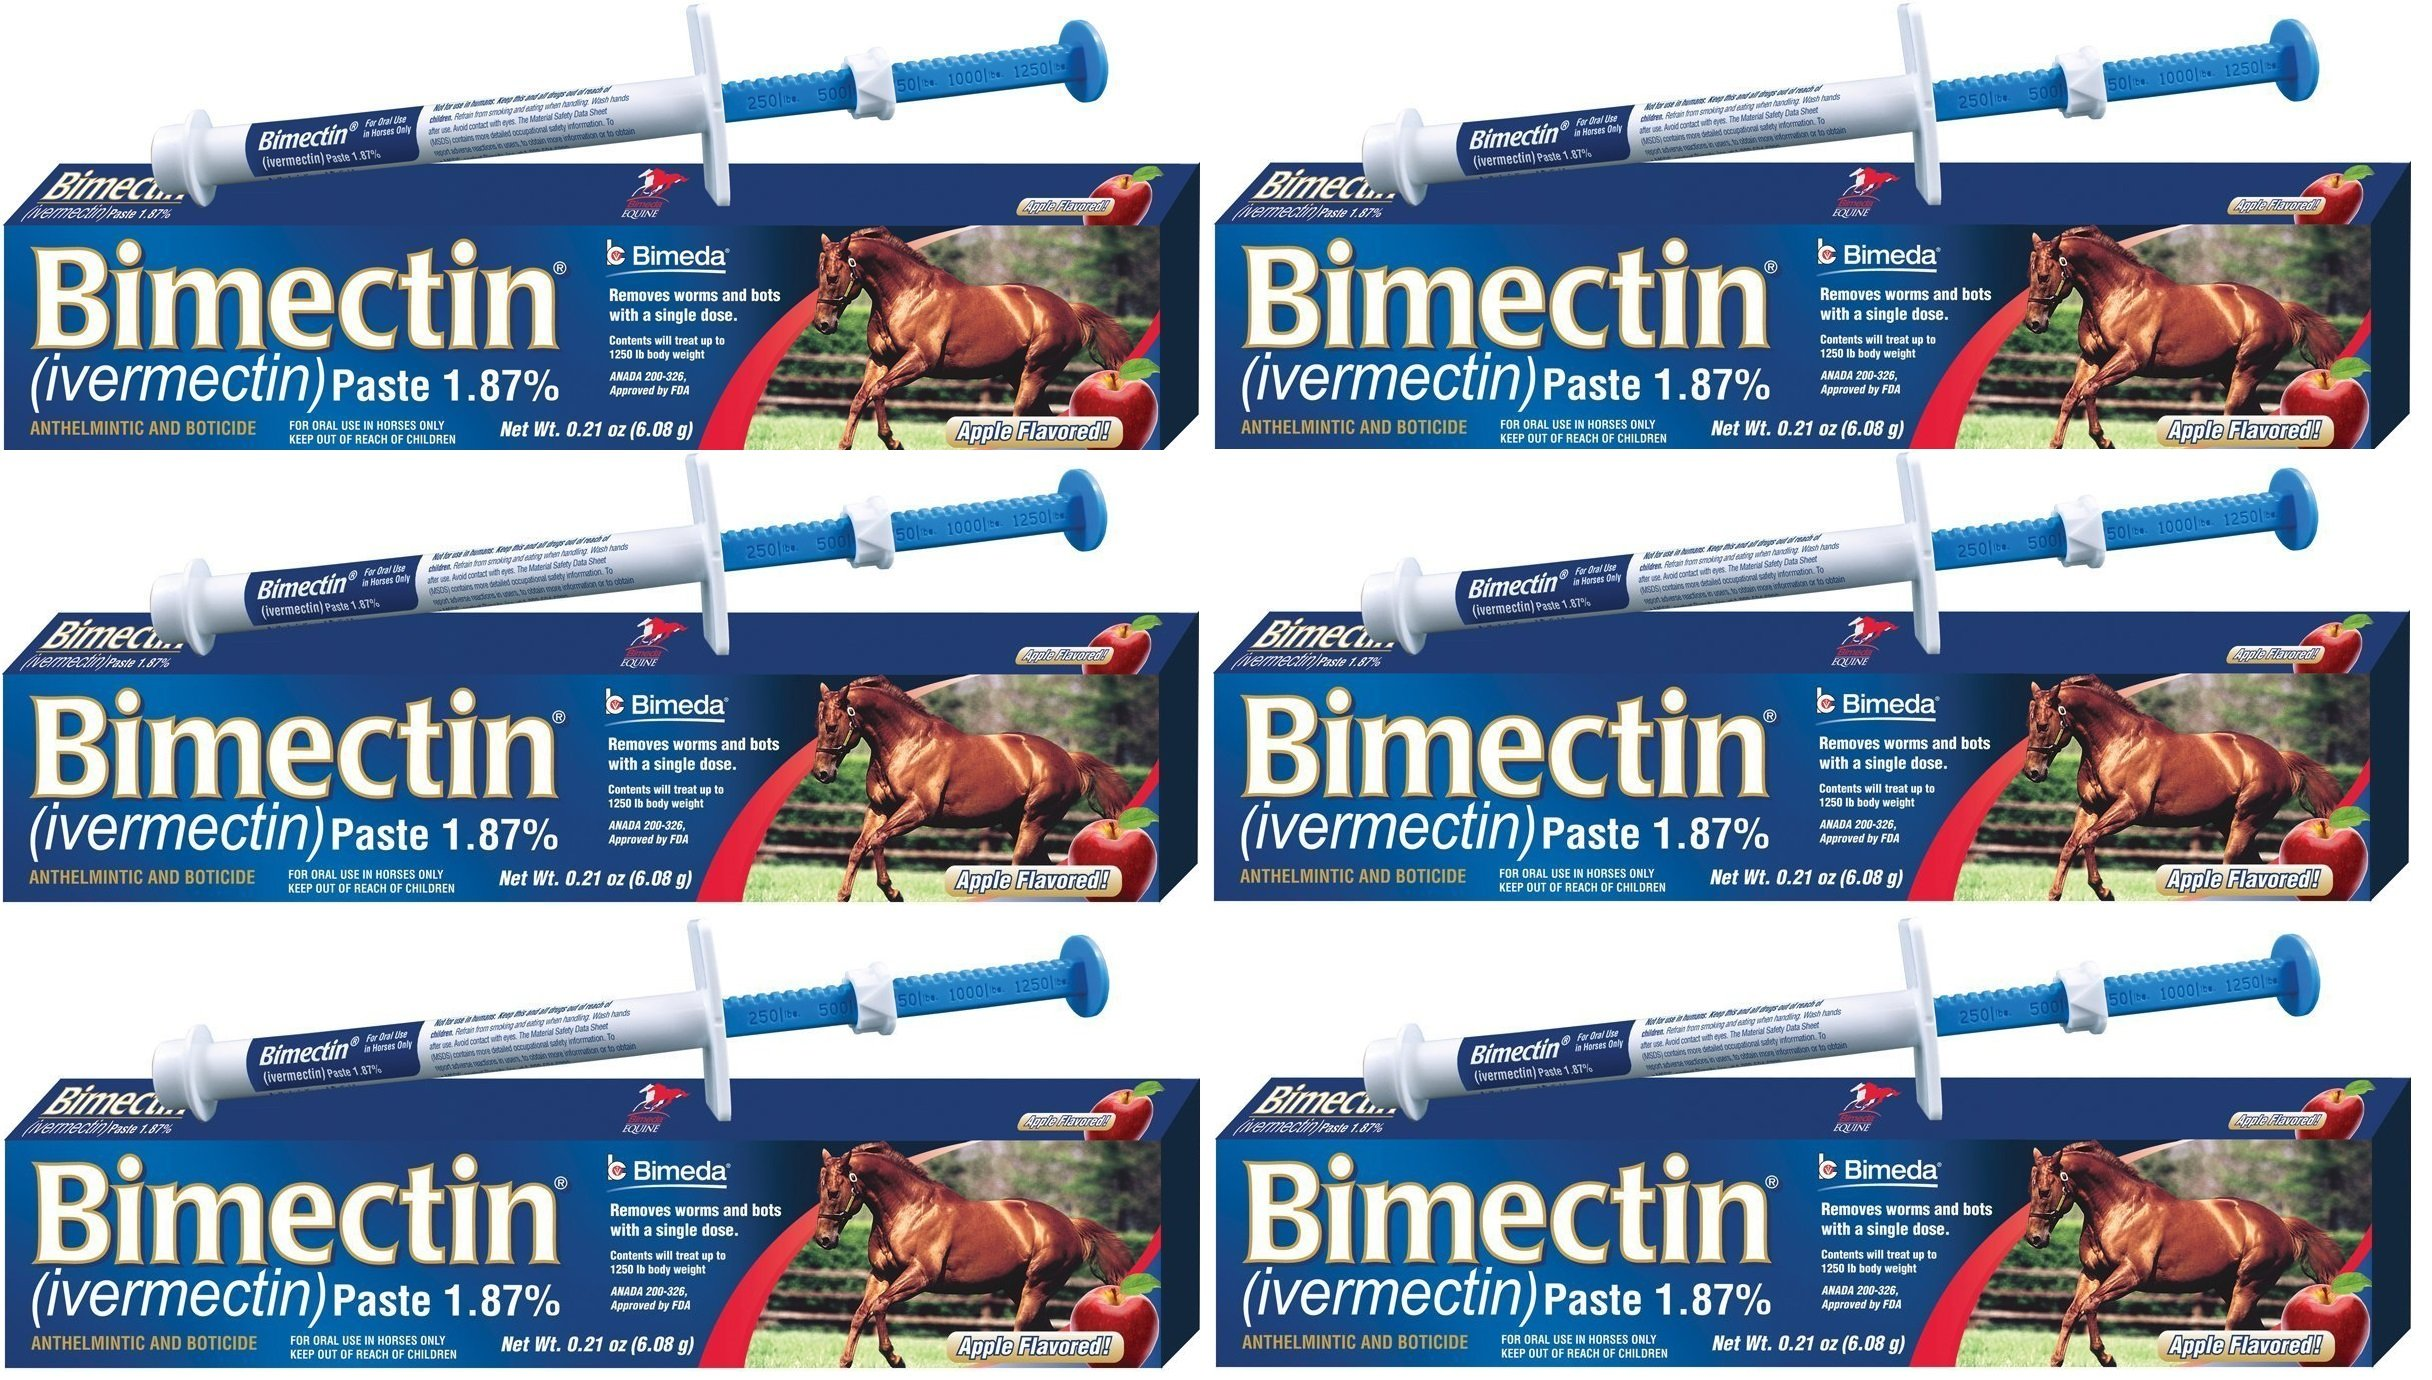 Bimectin Ivermectin Paste Horse Wormer (1.87 Ivermectin) - 6 DOSES, Model: , Home & Outdoor Store by MSRMUS